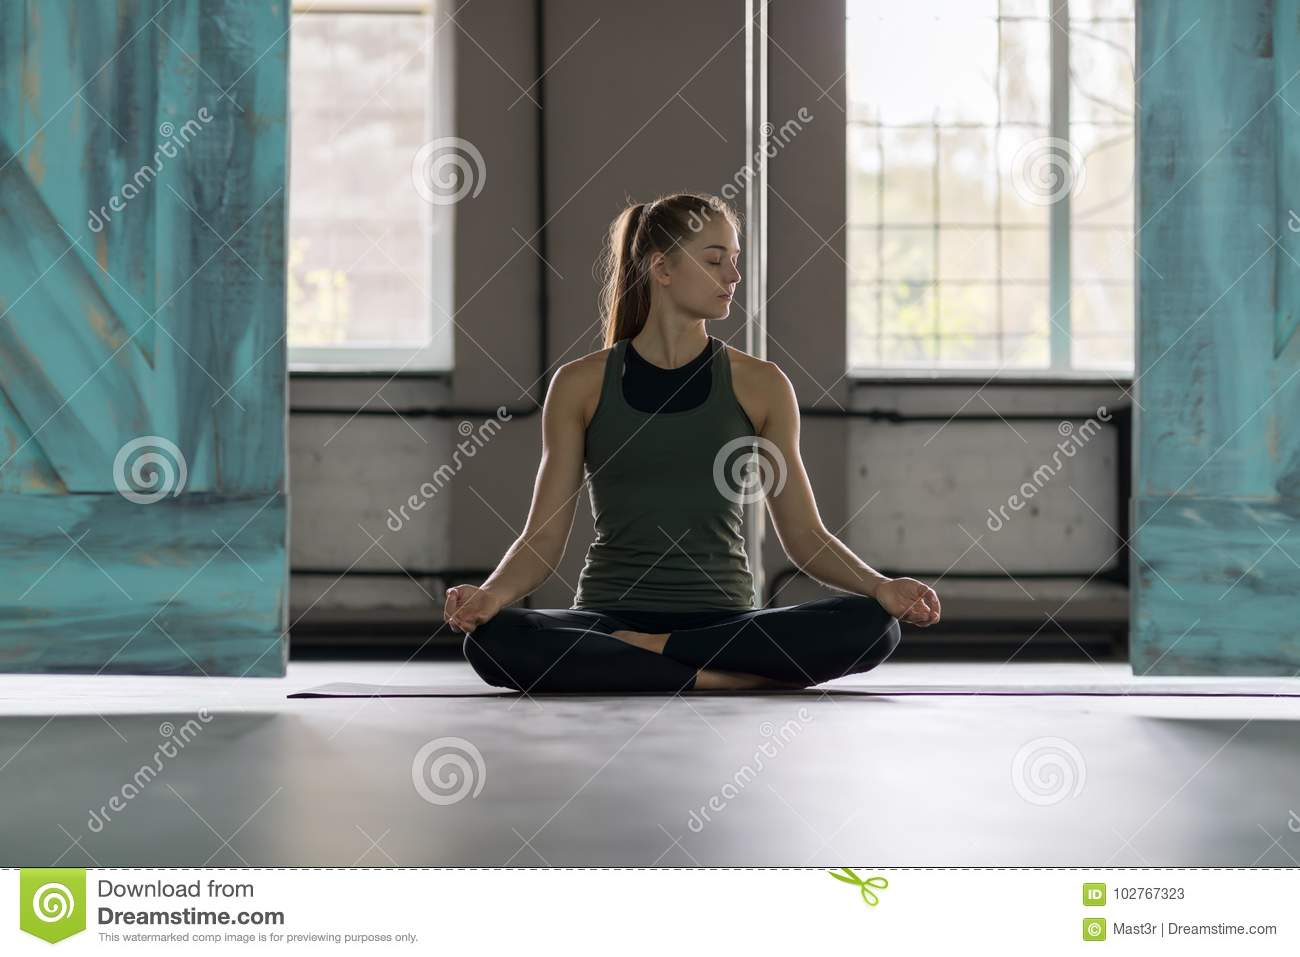 Woman Doing Yoga Exercises In Gym, Sport Fitness Girl Training Stretching